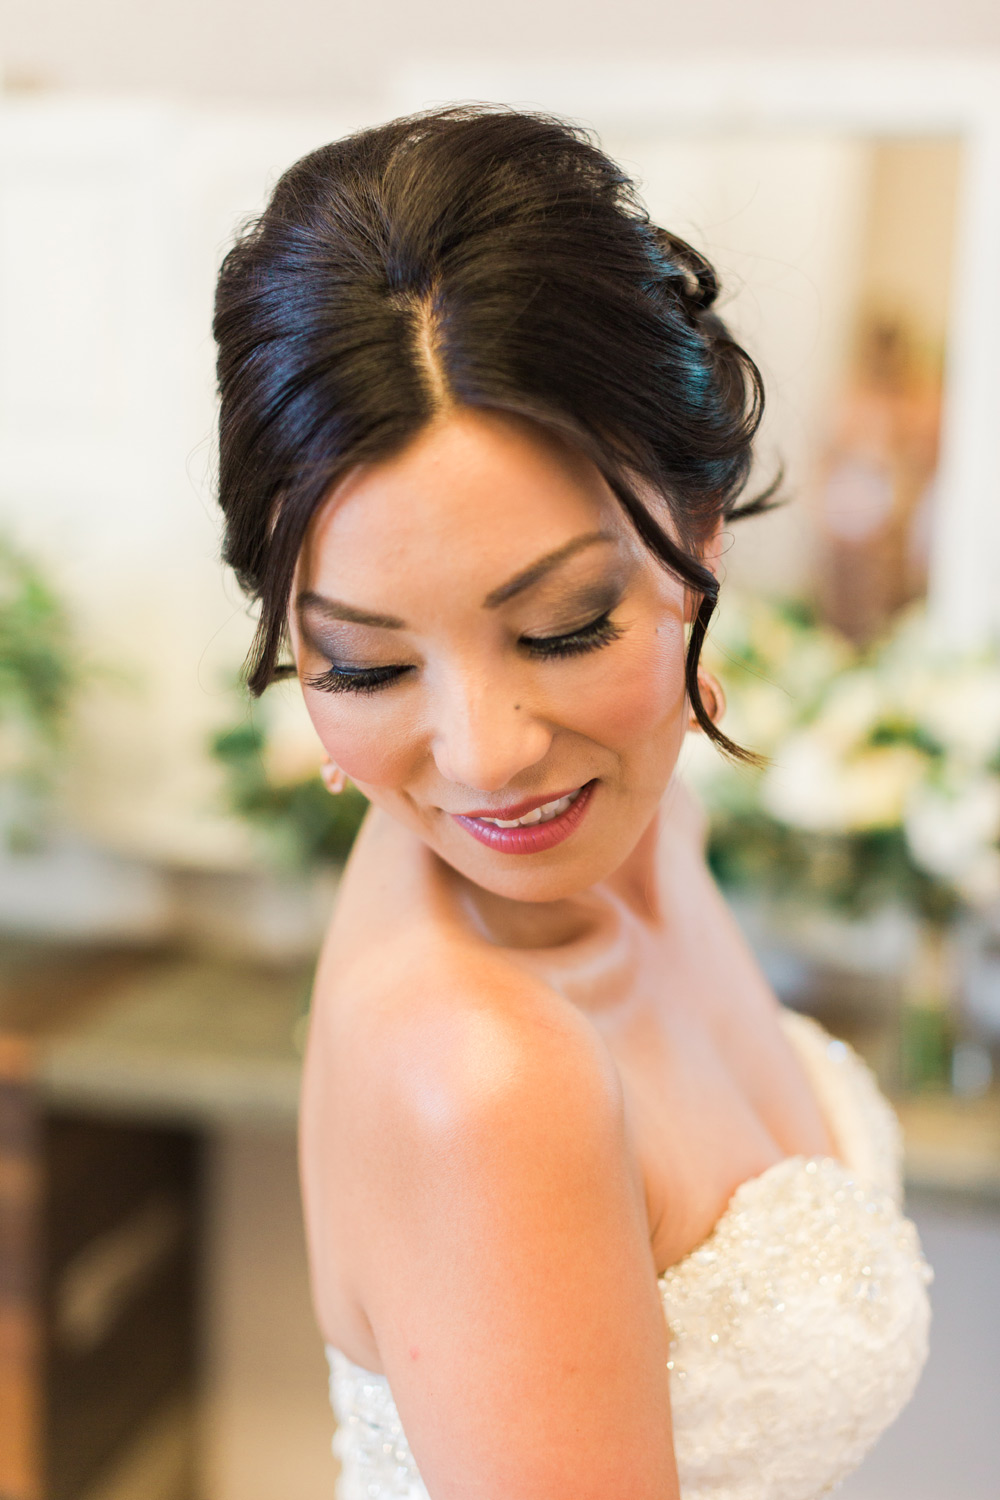 Bridal Makeup Artist For Amber Leeu0026#39;s Wedding At Tooth U0026 Nail Winery Paso Robles CA - Makeup ...